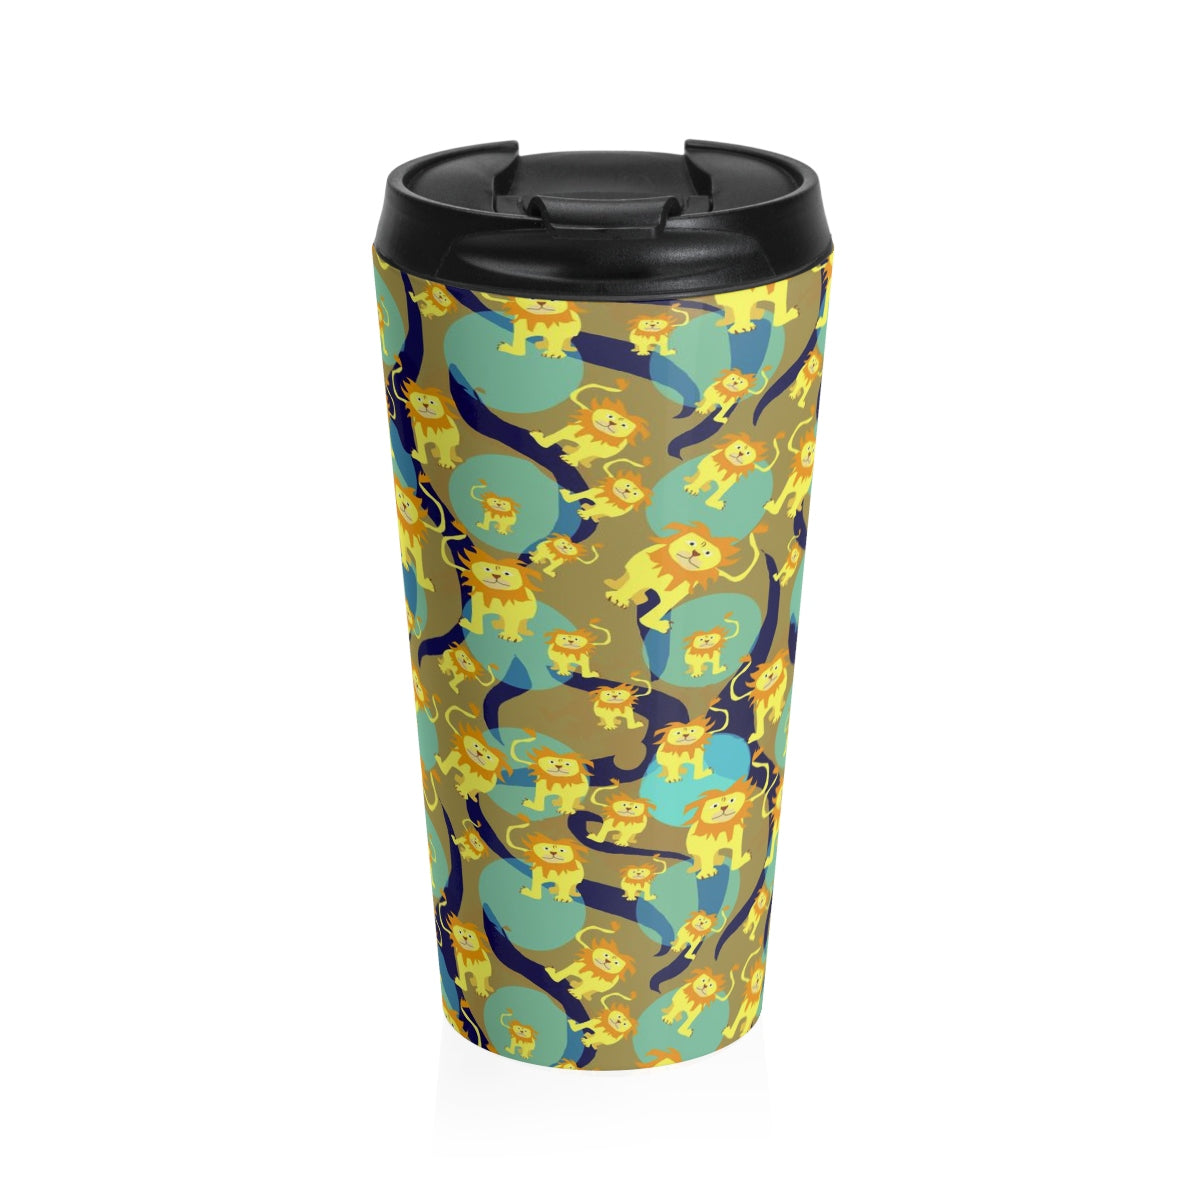 Lions Pattern Stainless Steel Travel Mug - expressive-flower-art-goods.myshopify.com